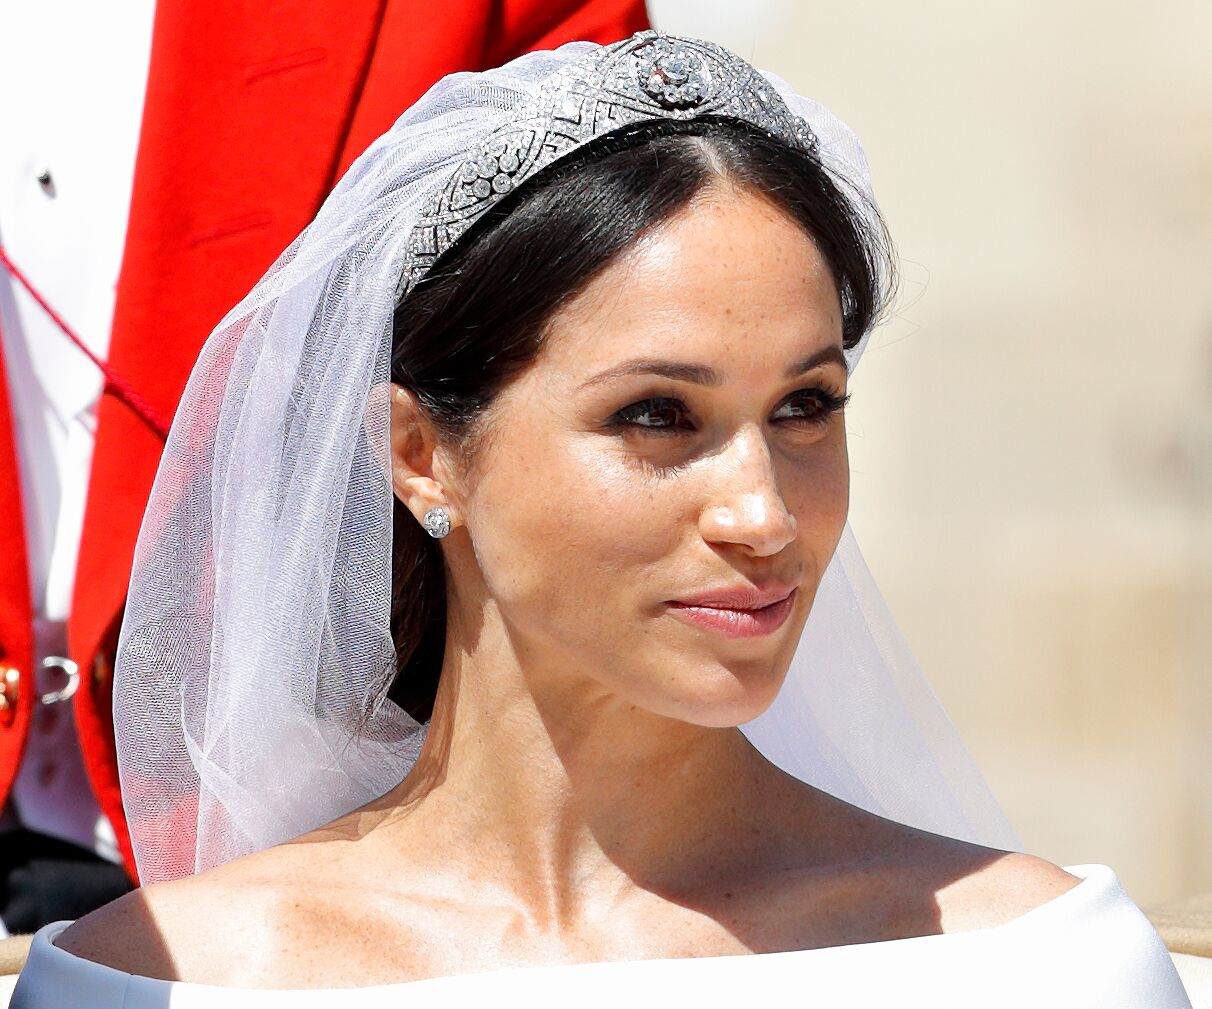 Meghan Markle during her wedding day in May 2018. | Source: Getty Images